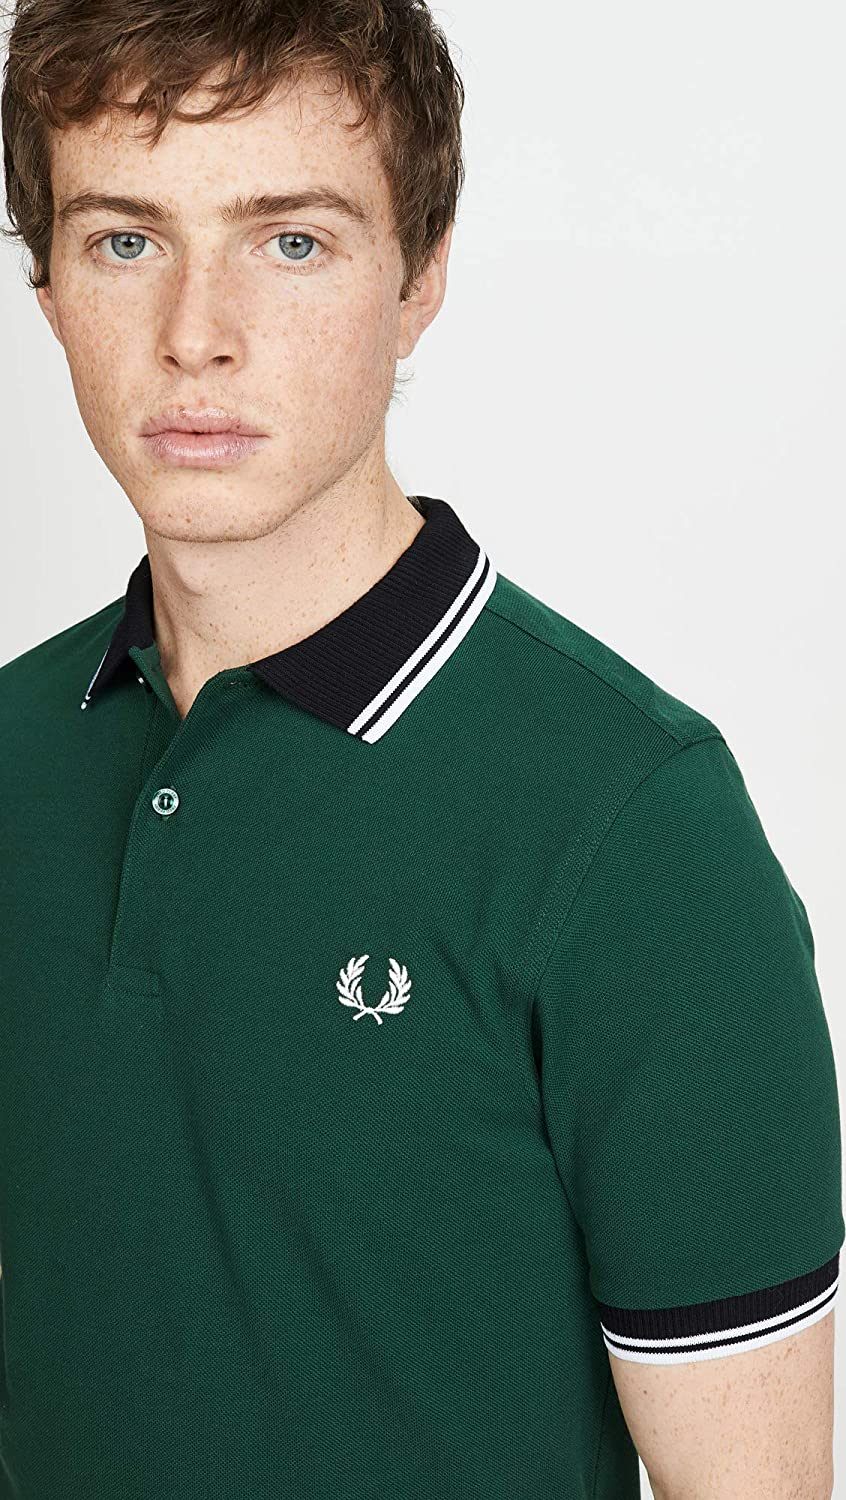 Fred Perry Contrast Trim Polo Shirt Hombre: Amazon.es: Ropa y ...